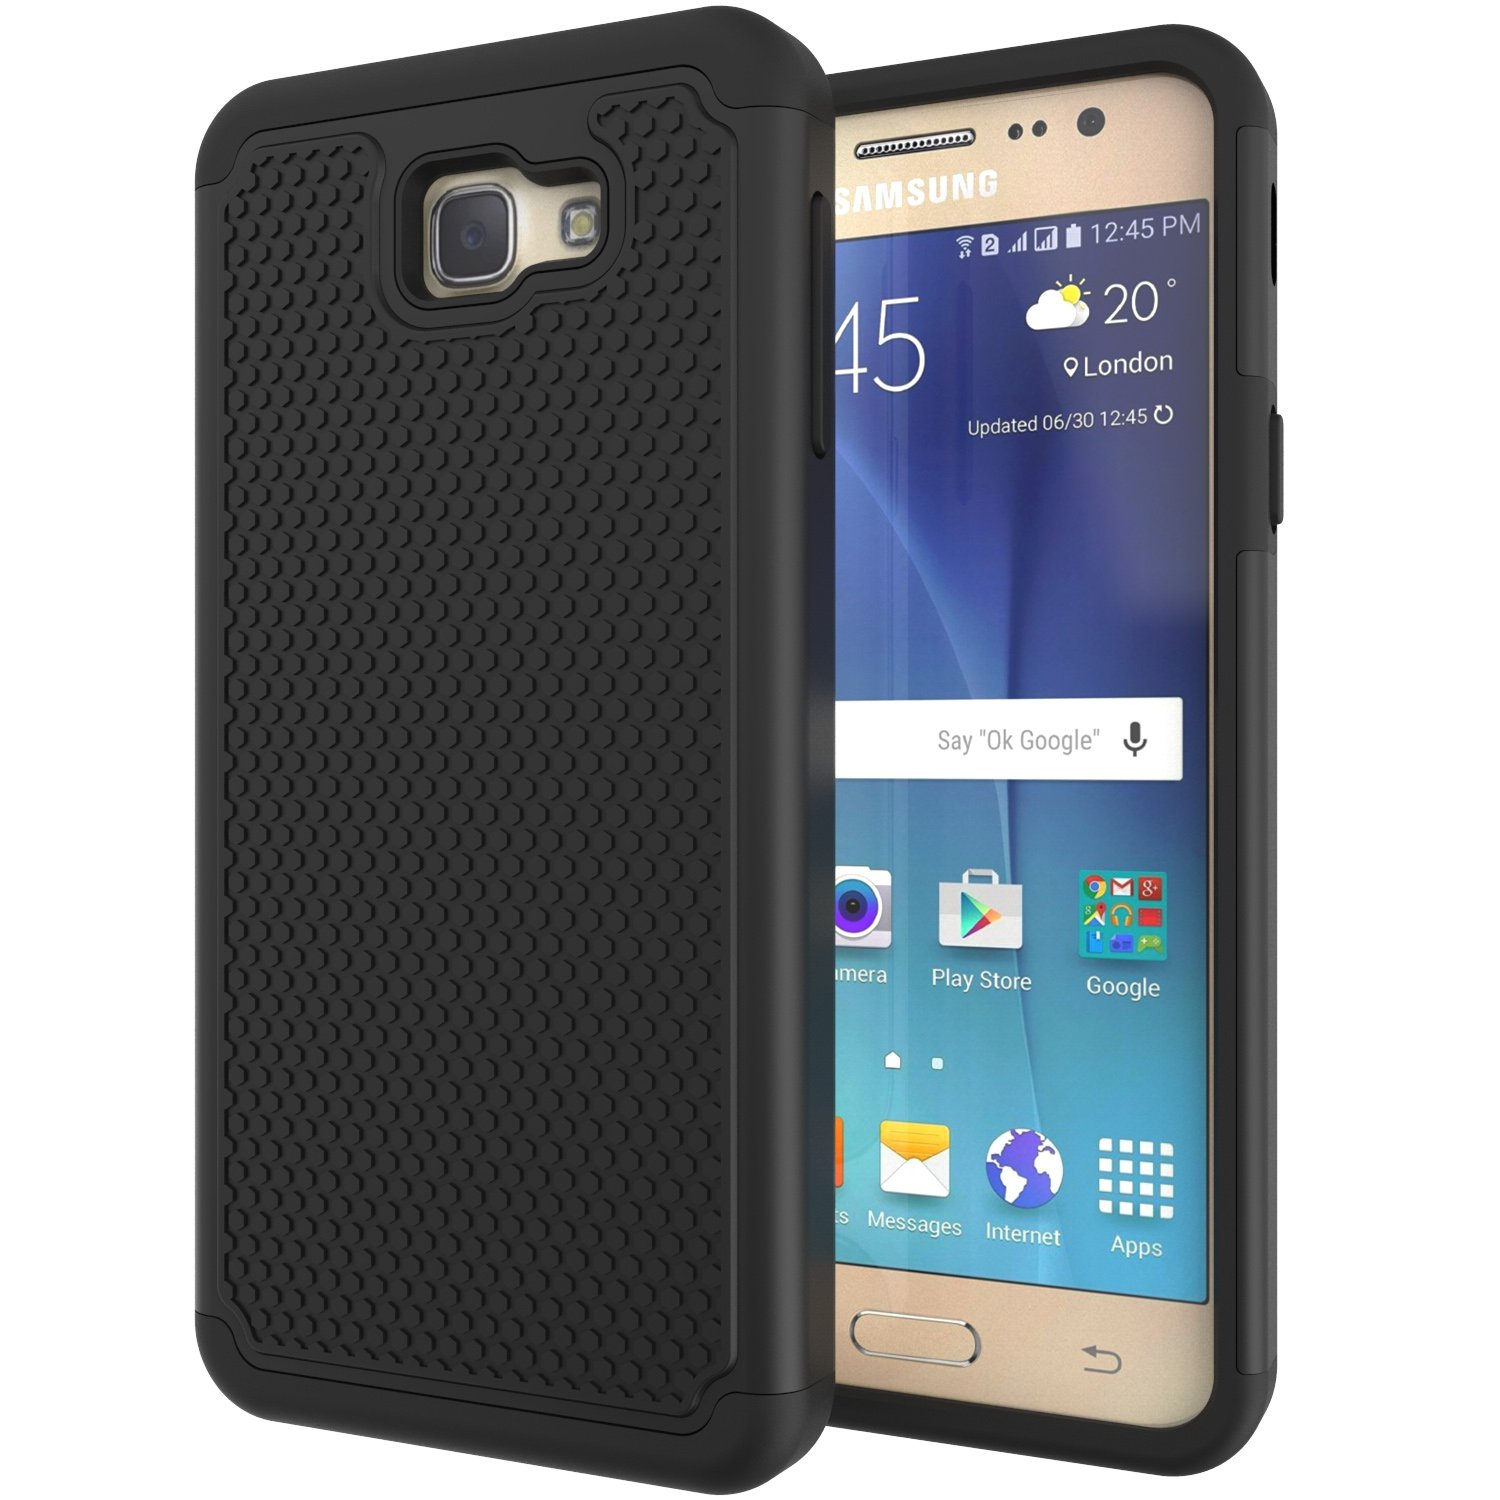 premium selection 1d5a6 20366 Galaxy On5 2016 Case,Galaxy J5 Prime Case,ANLI(TM) [Shock Absorption]  Hybrid Dual Layer Armor Protective Case Cover for Samsung Galaxy On5  2016/J5 ...